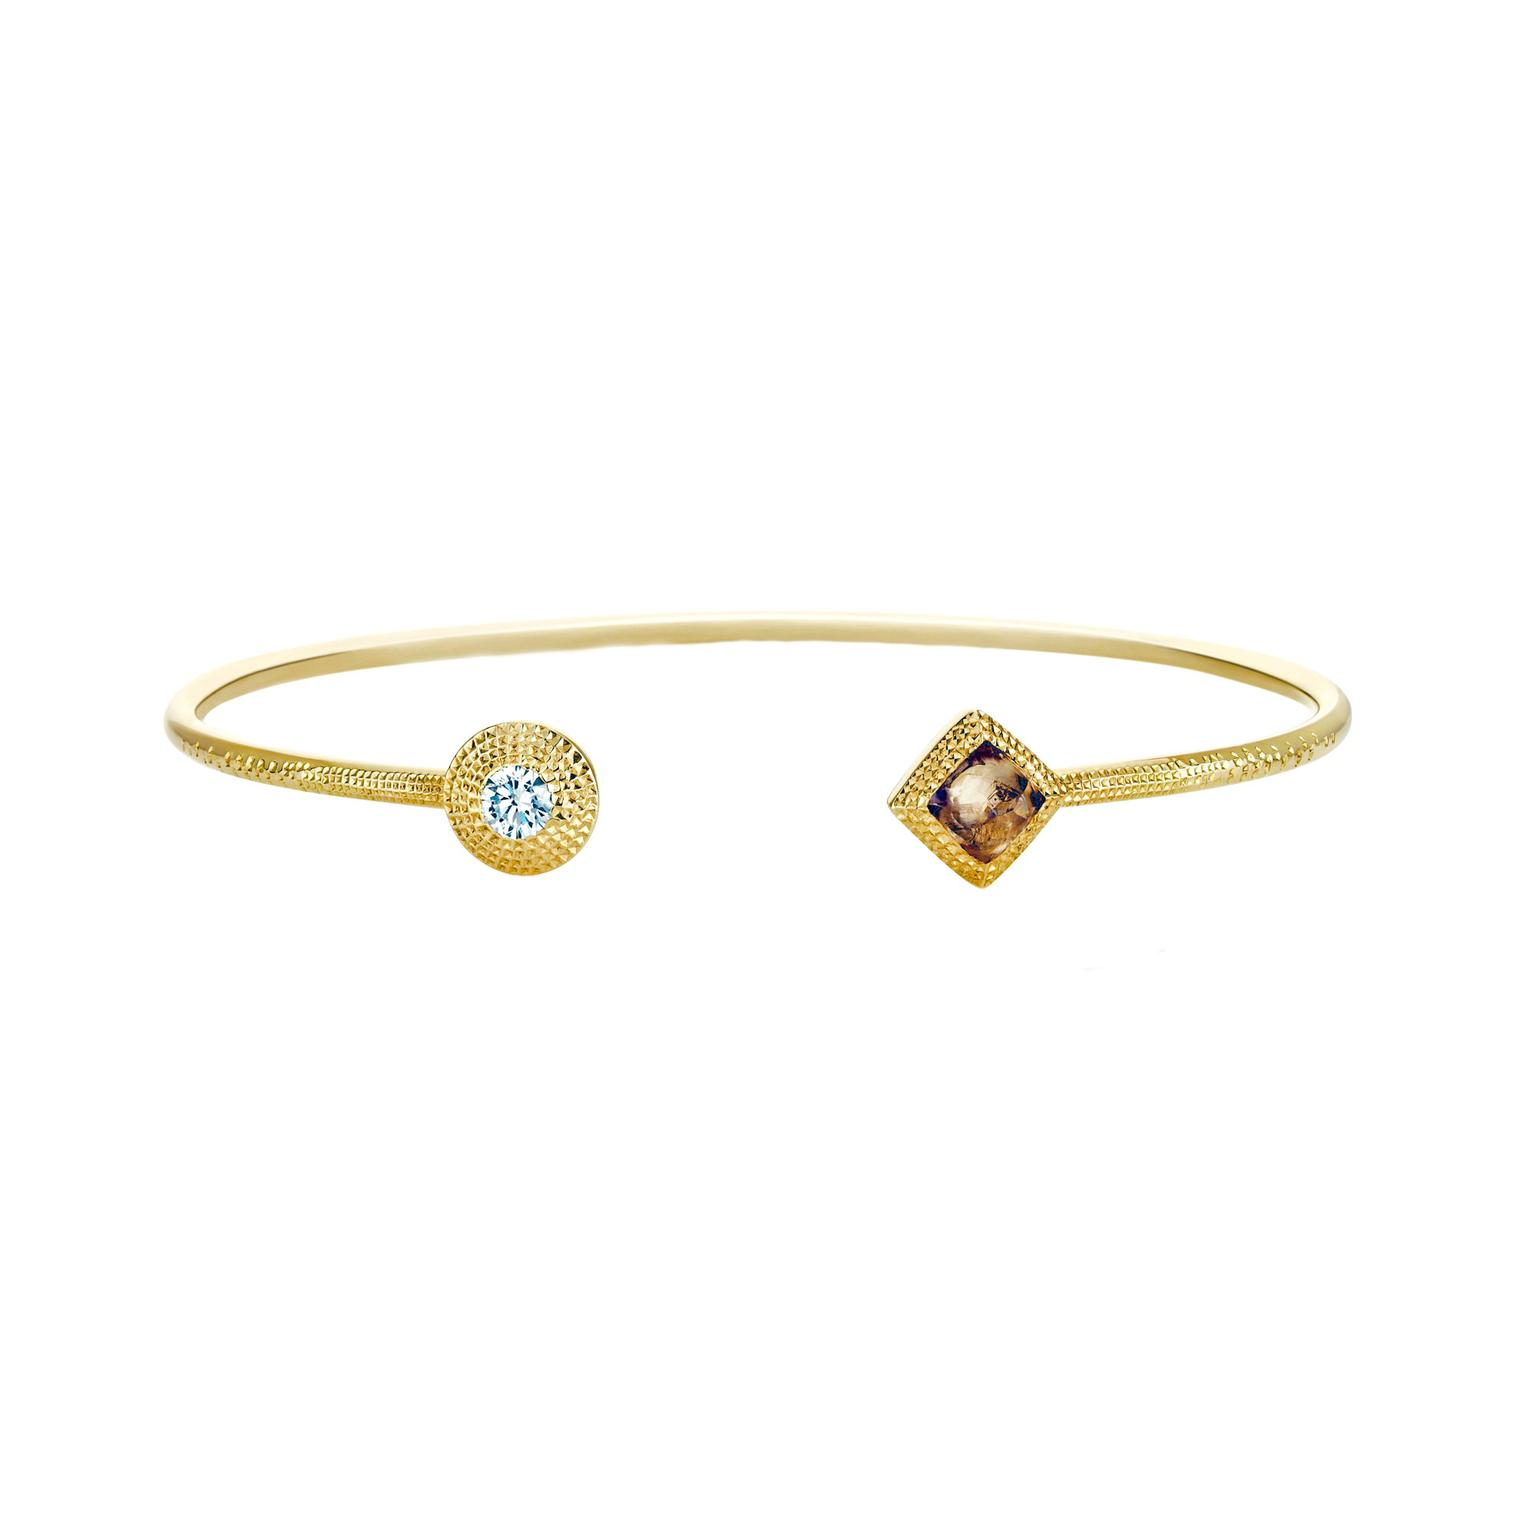 De Beers Talisman collection open bracelet